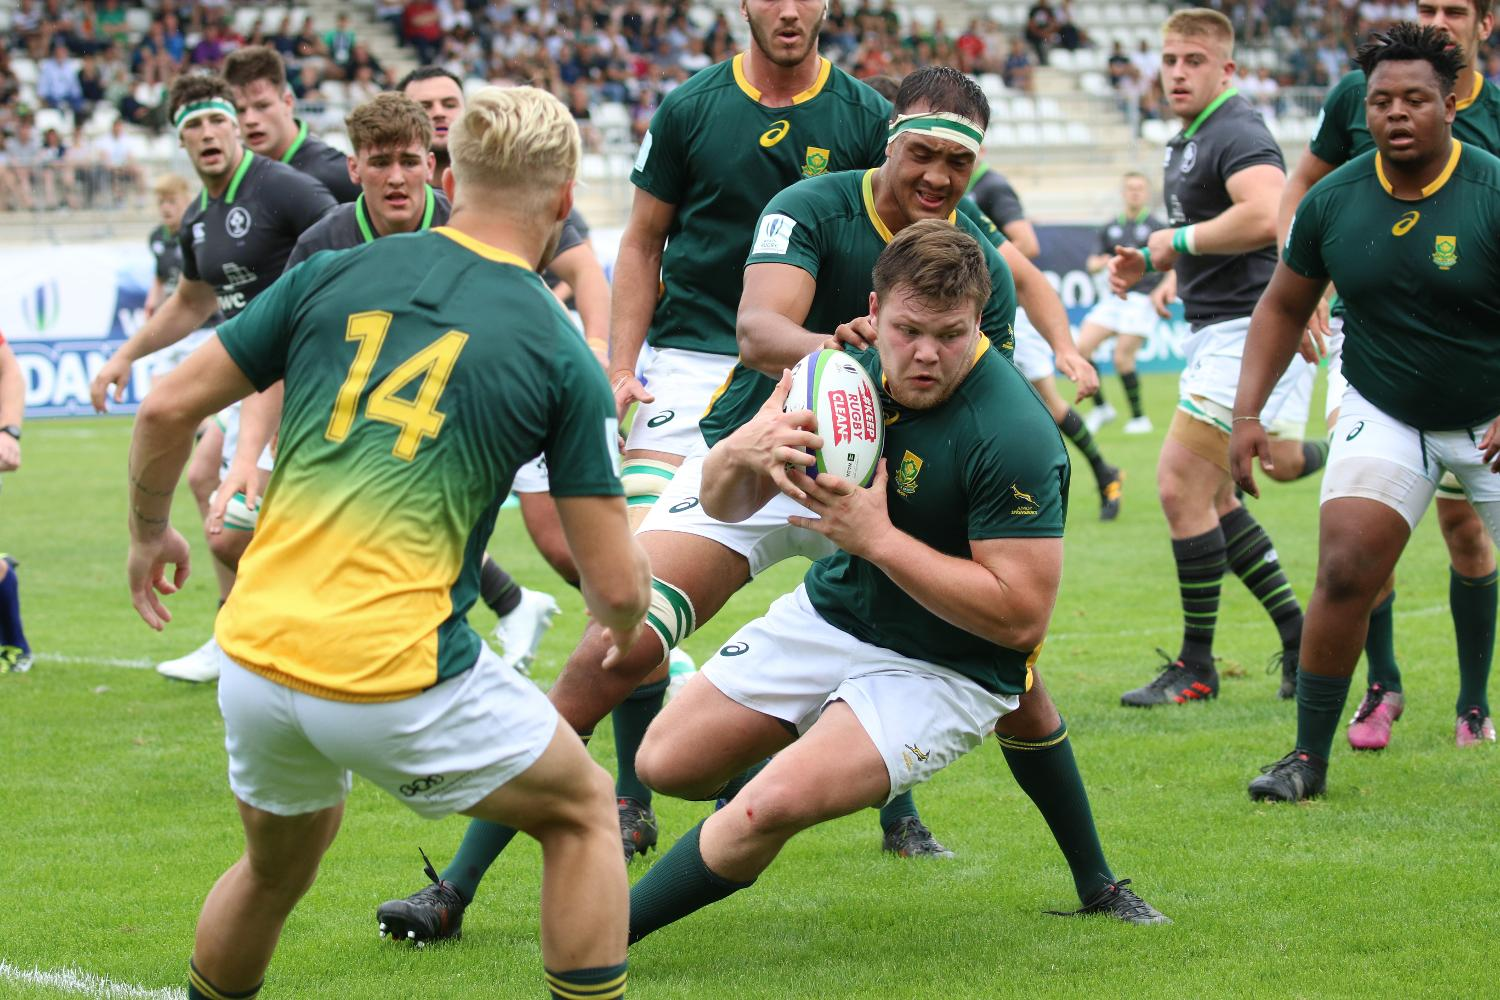 World Rugby U20 Championship 2018: South Africa v Ireland